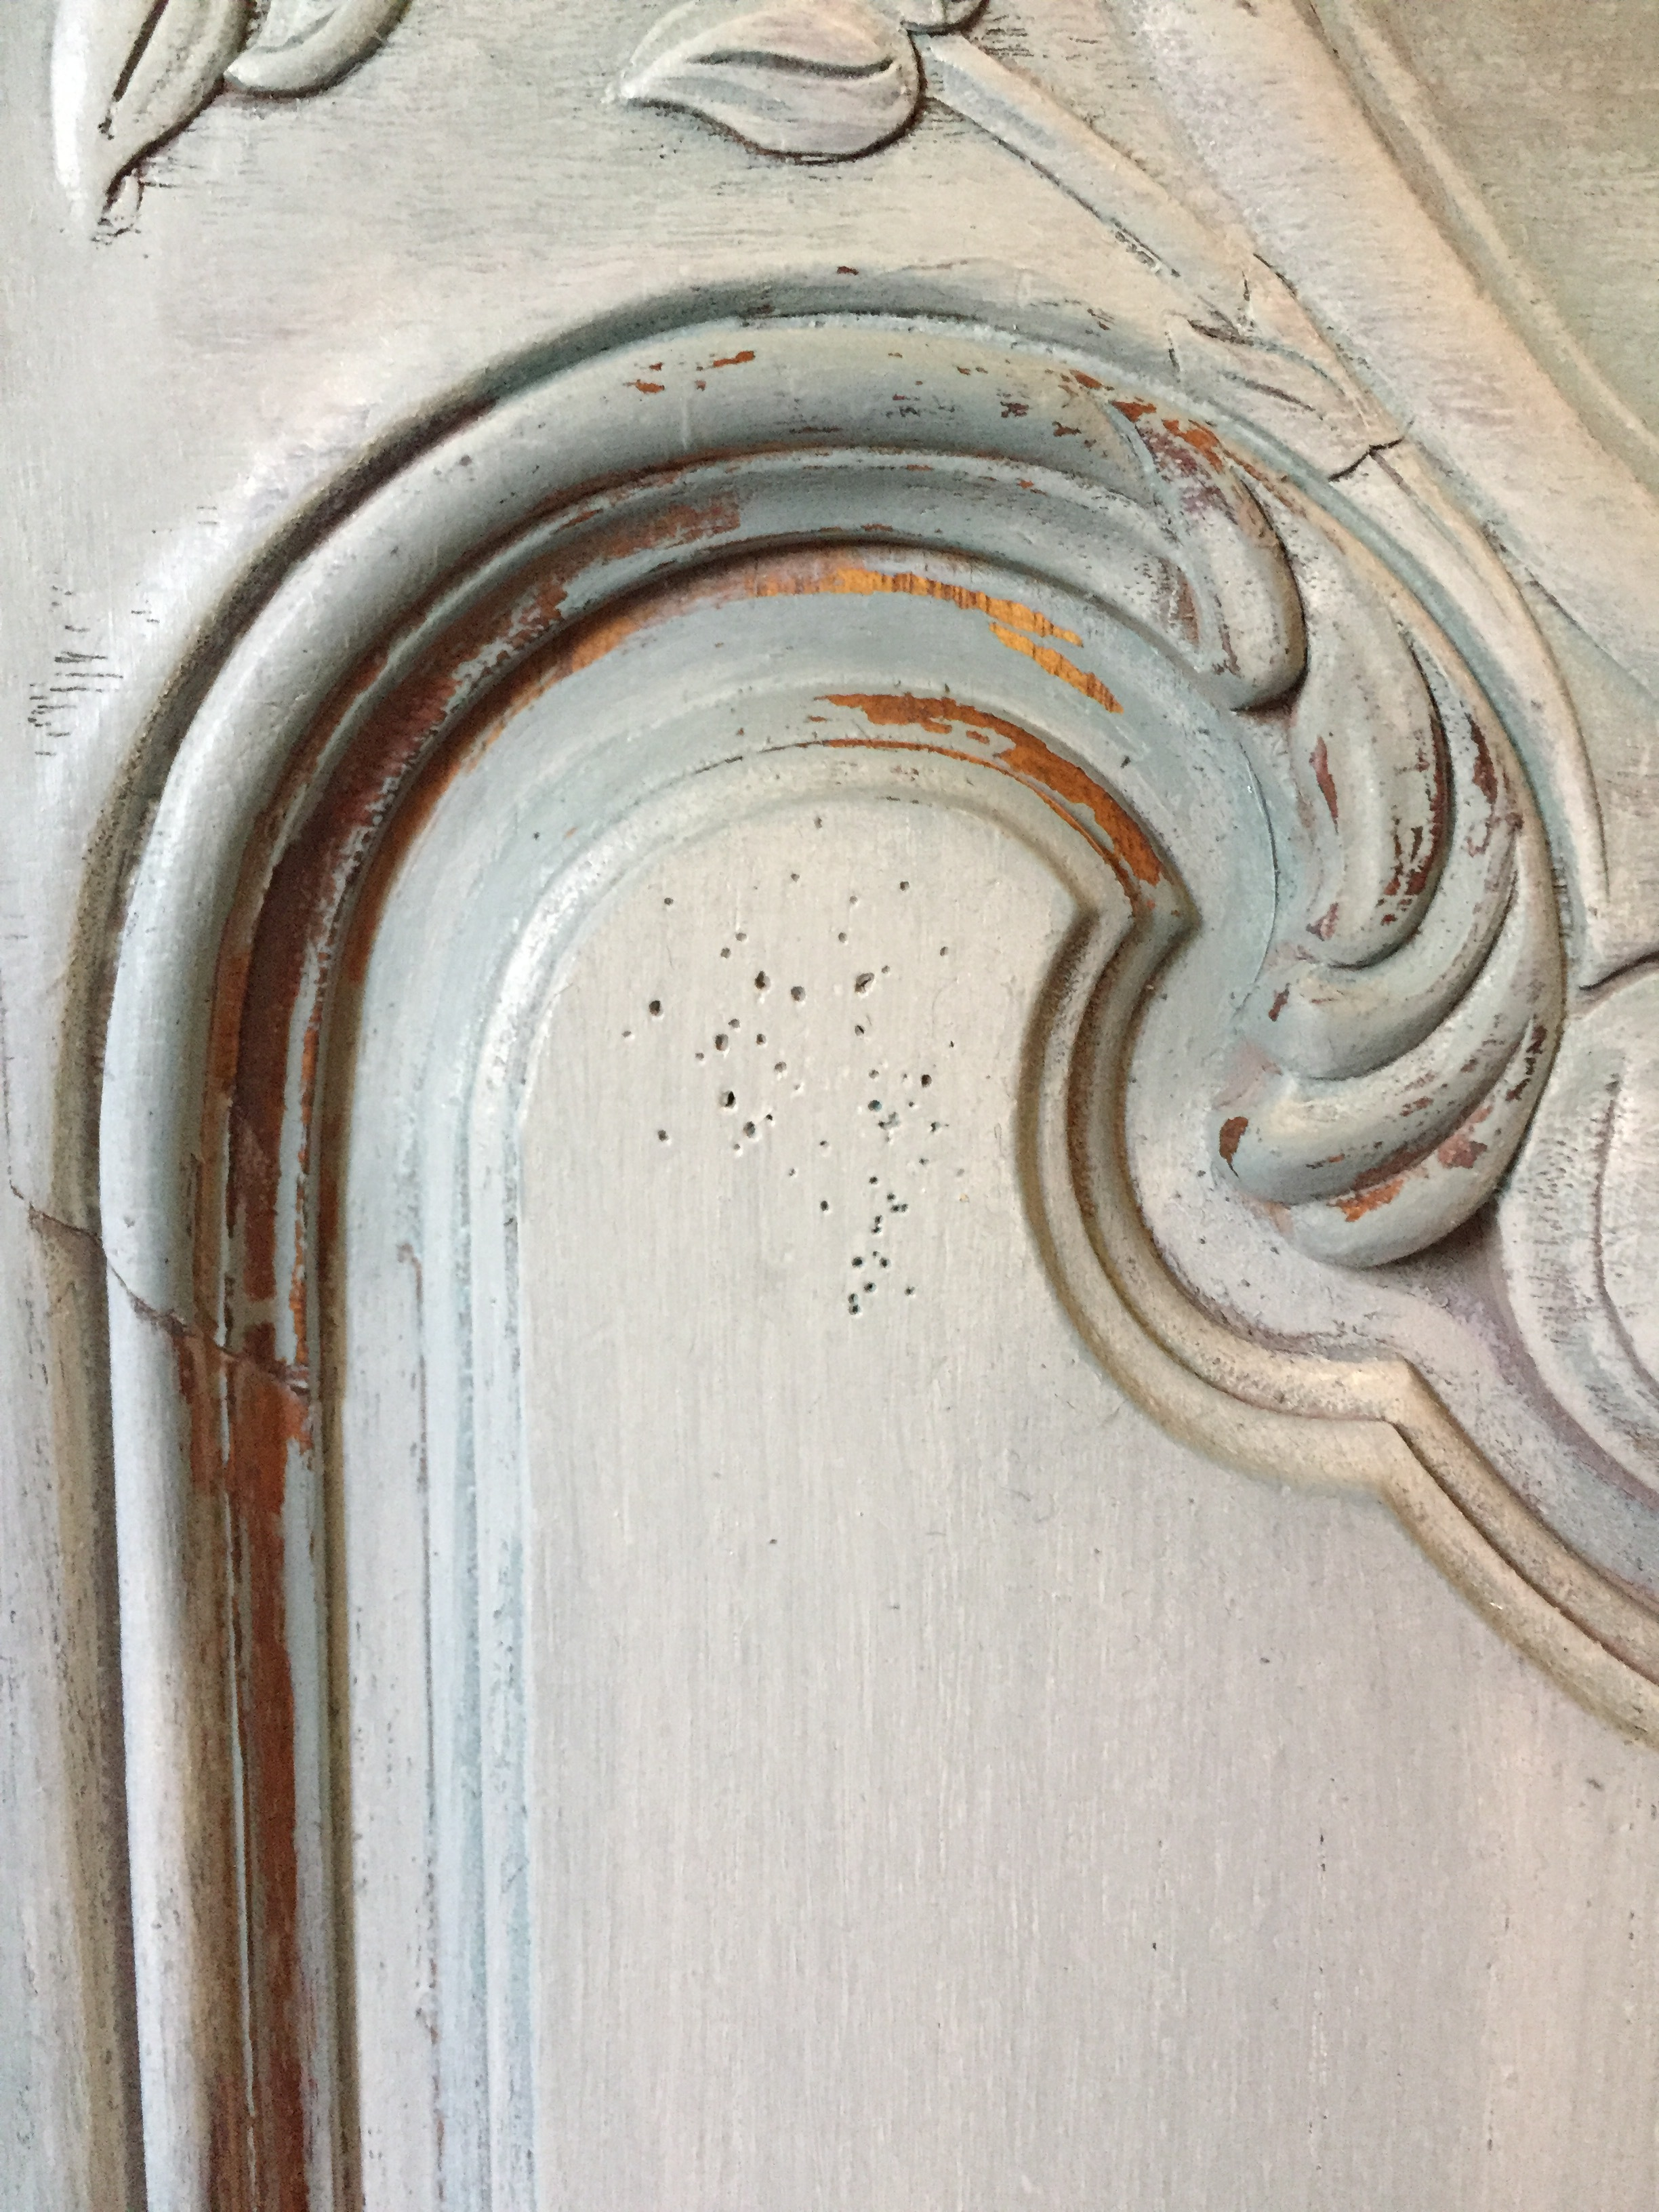 We get into the details!  Layers and distressing give our antiqued finishes a genuine feel, as opposed to the chalky craft store finishes which are so ubiquitous these days.